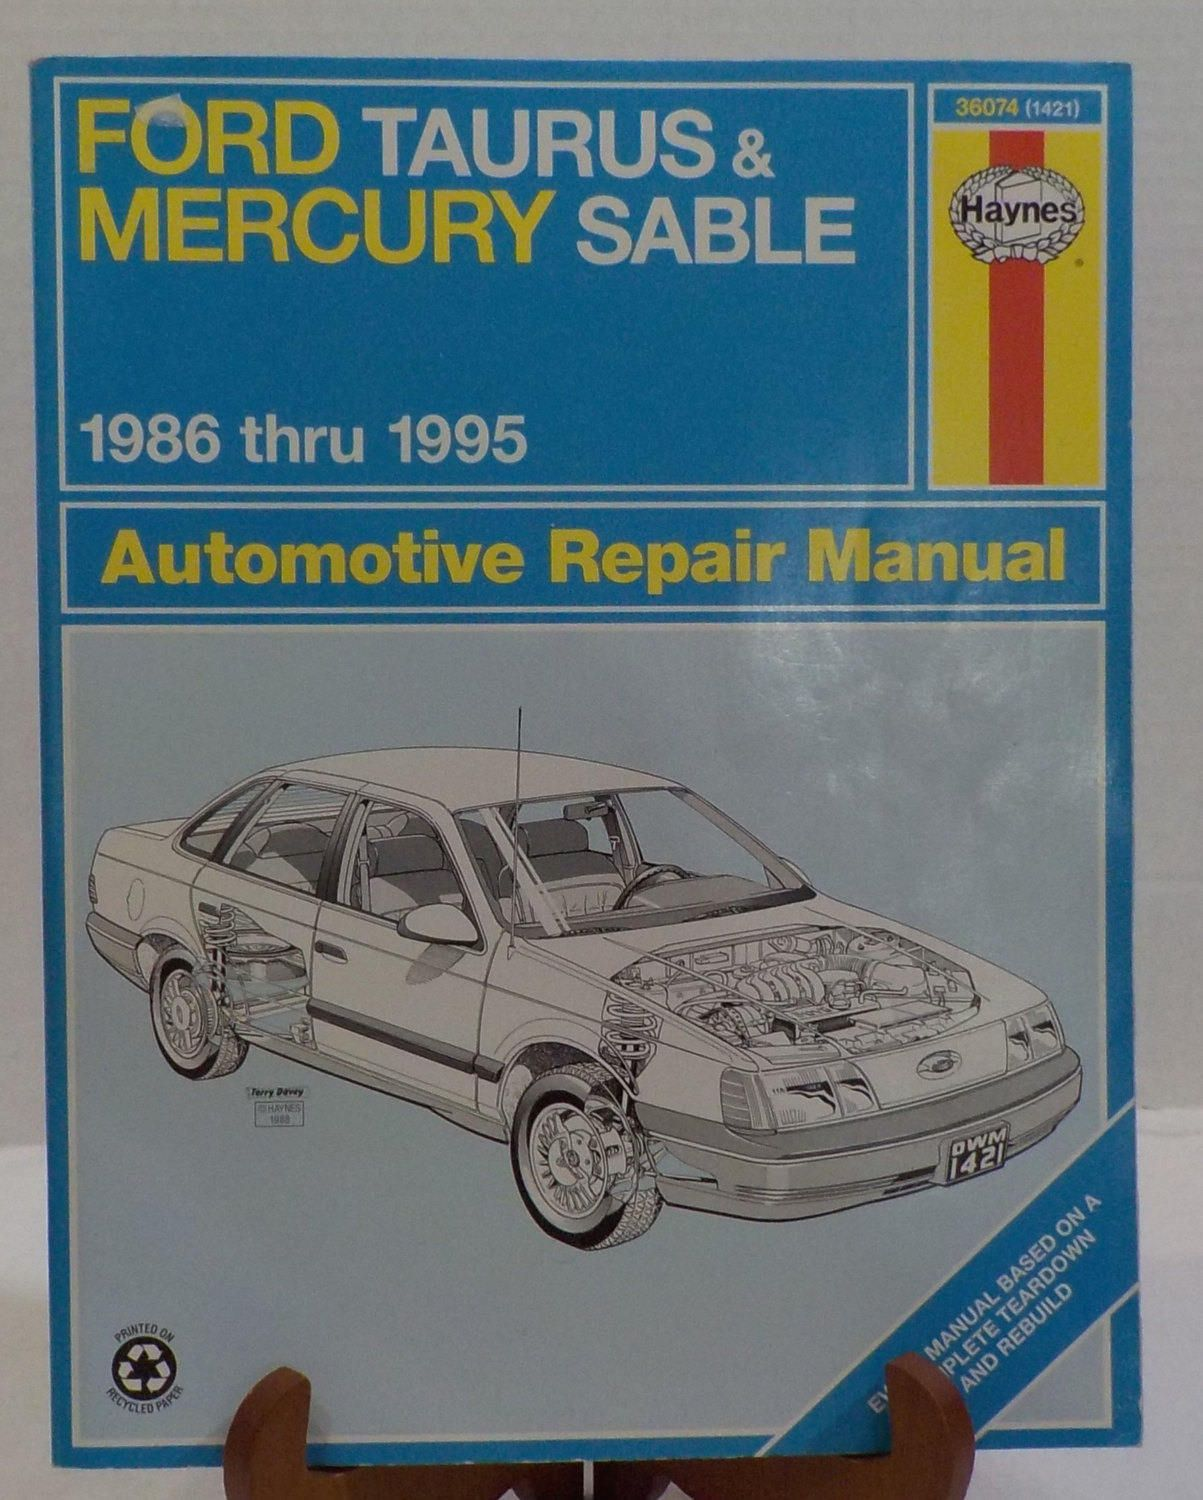 Ford Taurus Mercury Sable 1986 - 1995 Repair Manual Haynes by  LouisandRileys on Etsy